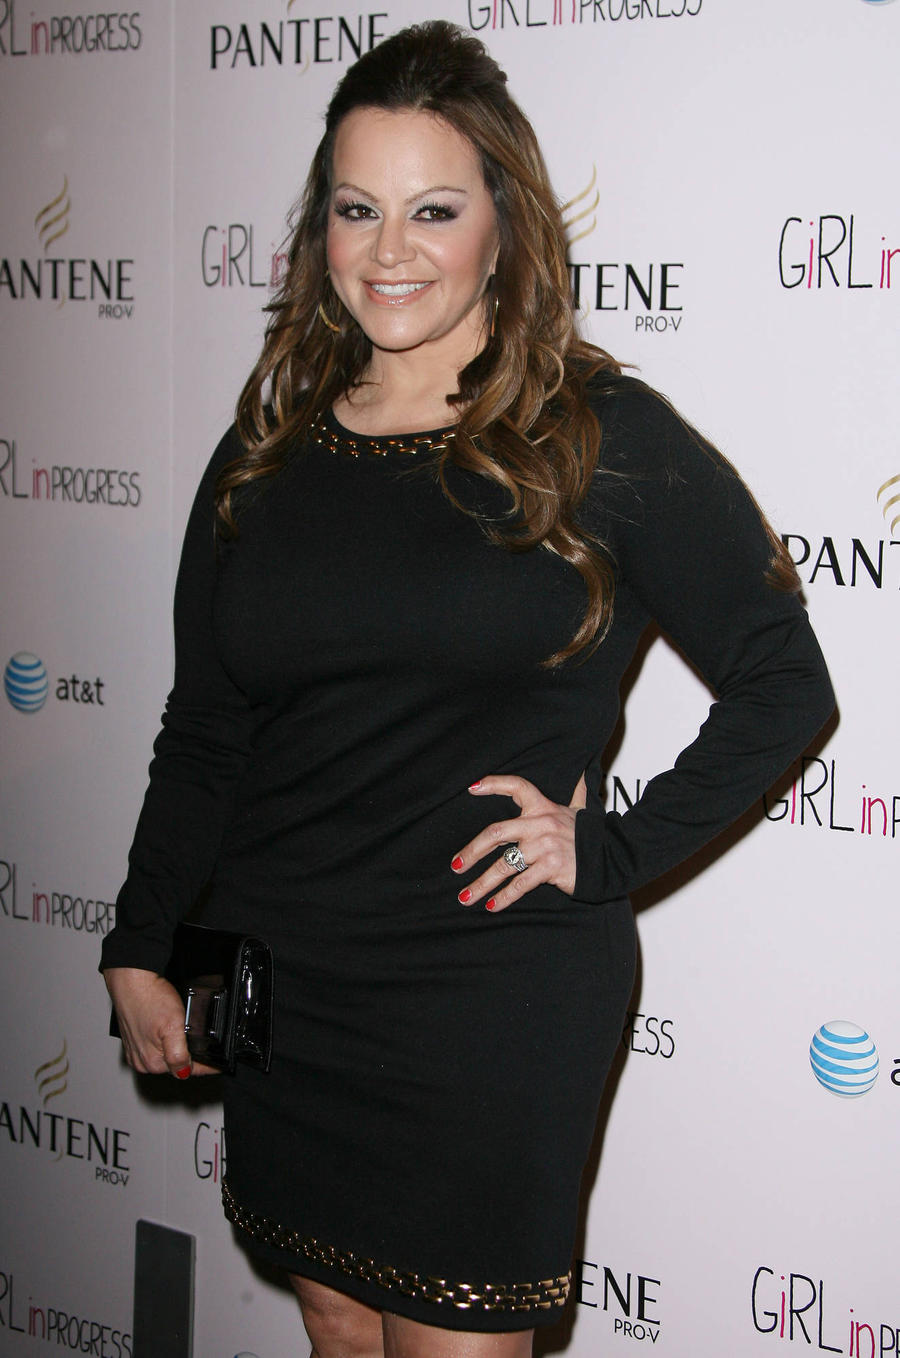 Jenni Rivera's Family Denied Motion For Discovery In Lawsuit With Former Manager